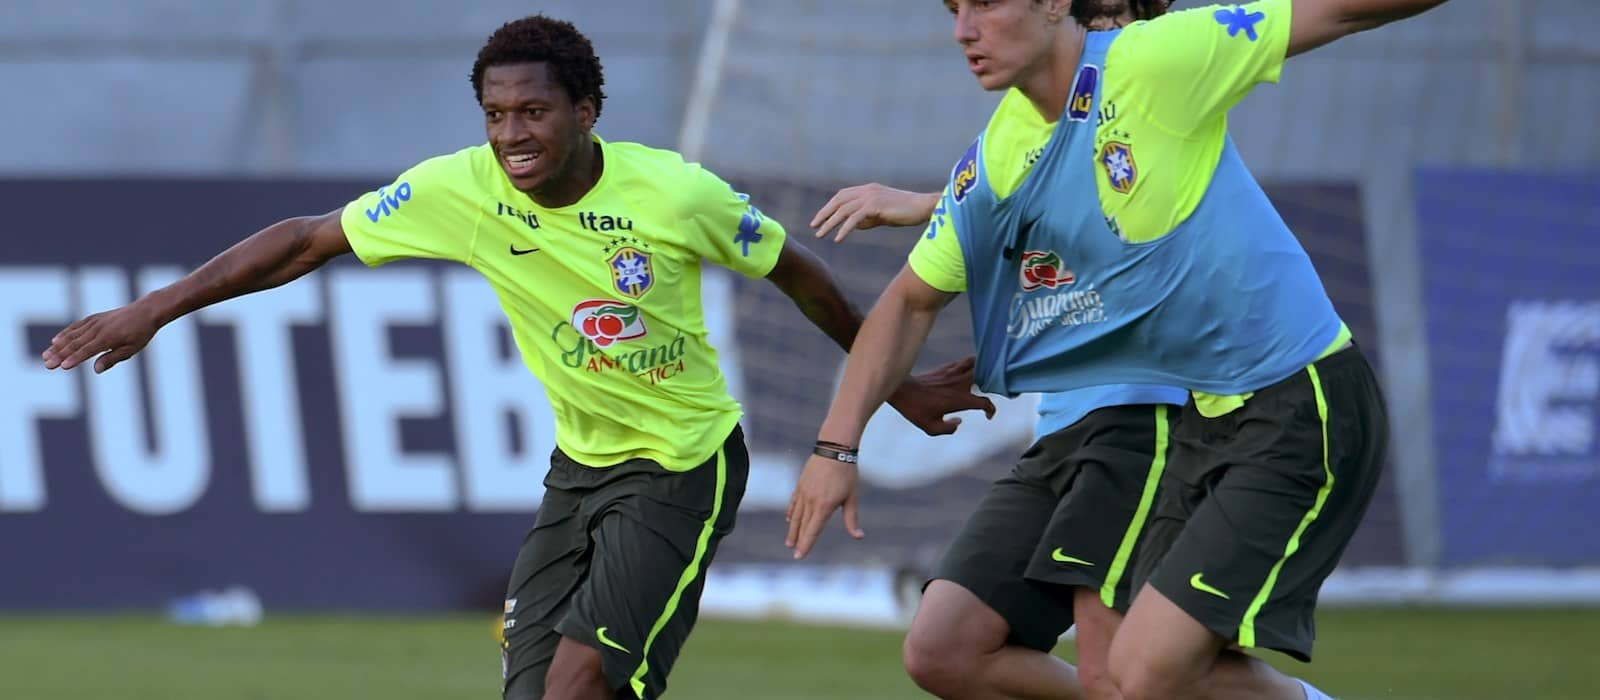 Photo: New signing Fred set to join Manchester United's pre-season tour on Friday